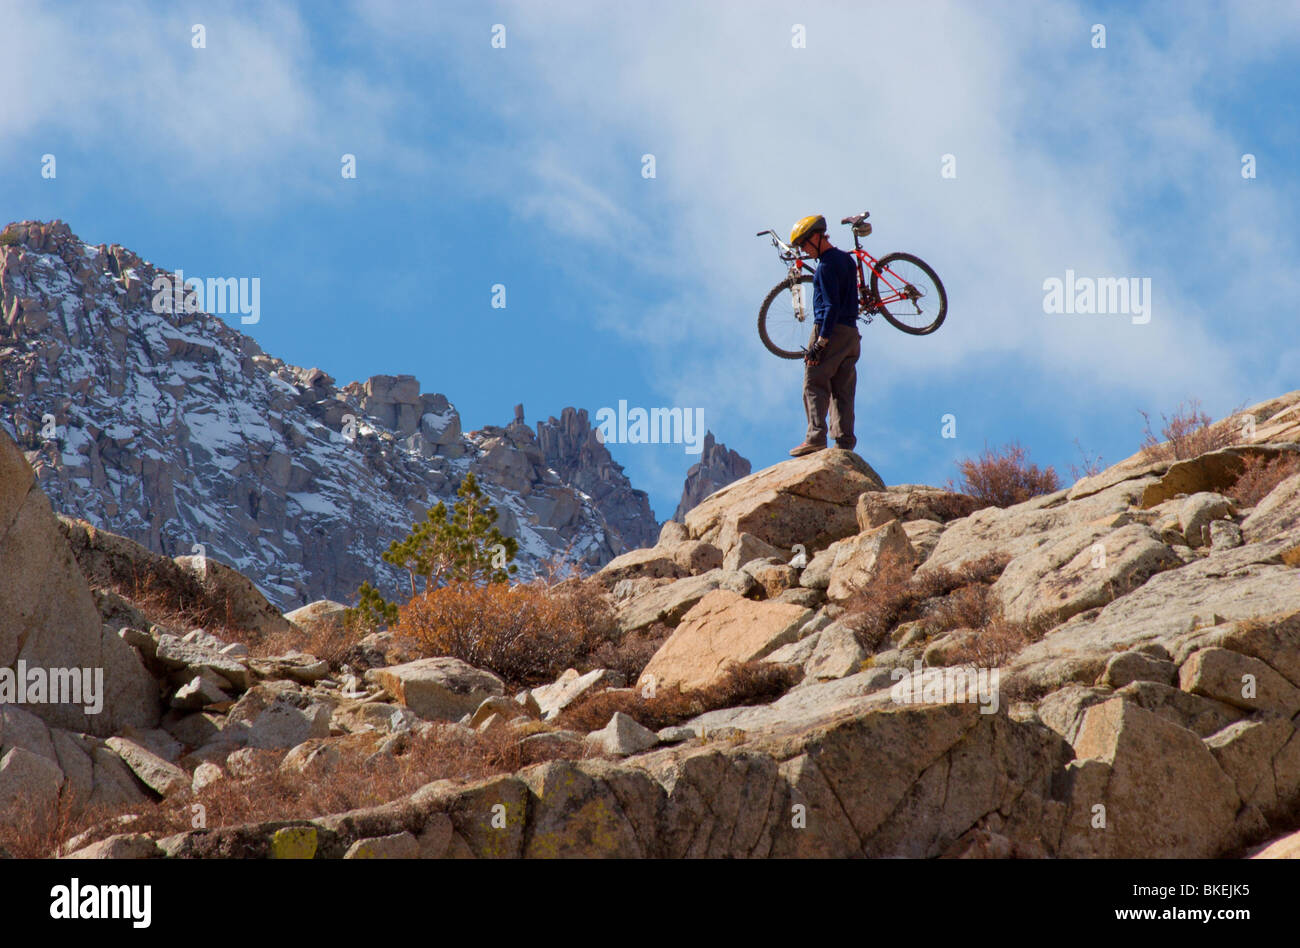 Man carries his mountain bike up mountain ridge in the Sierra Nevada  mountains - Stock Image 30a201fa7